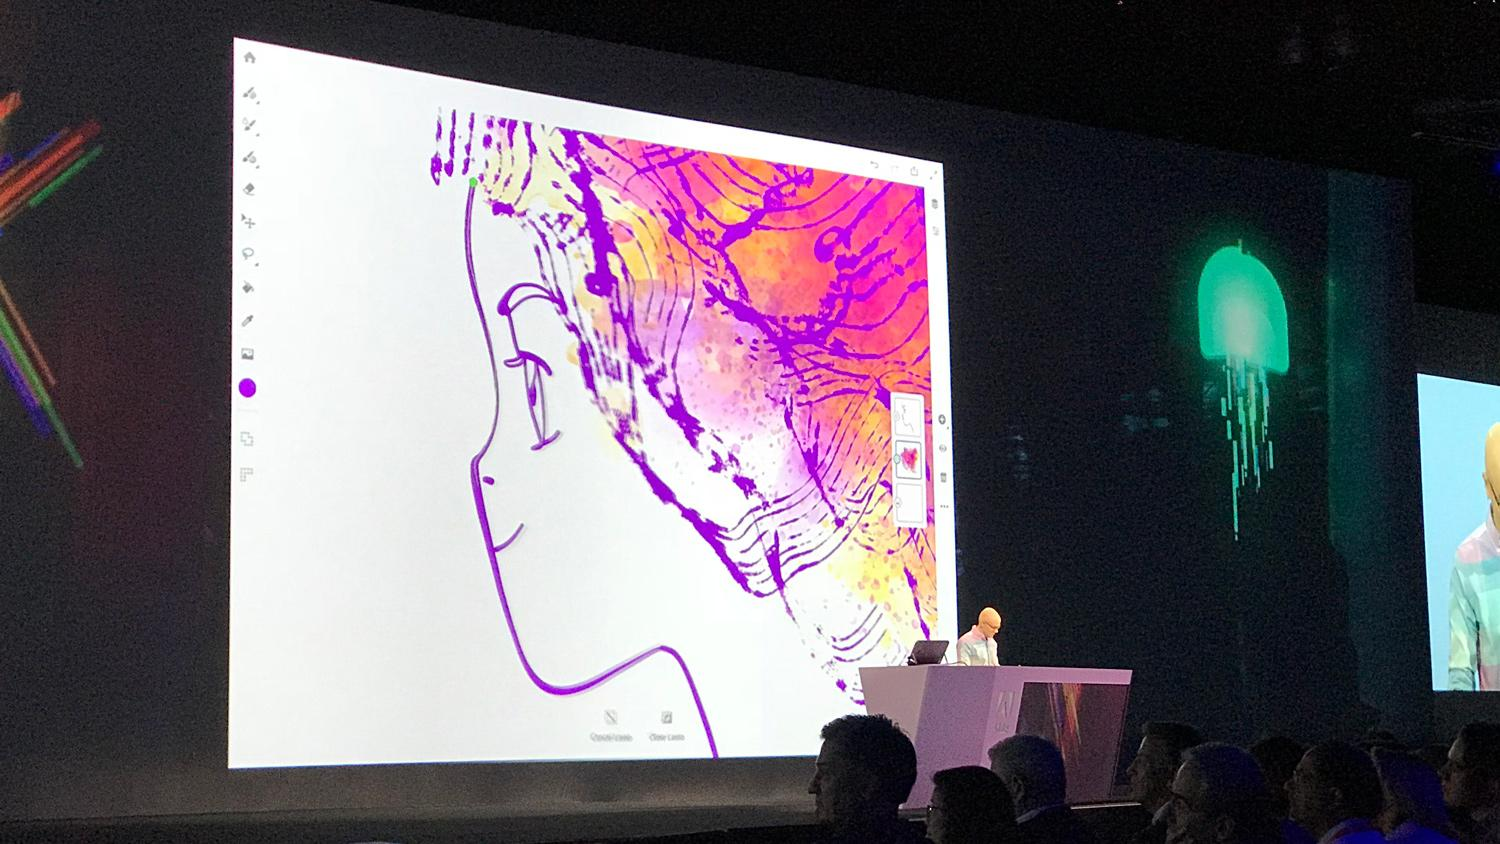 Kyle Webster takes the stage at Adobe MAX to showcase Adobe